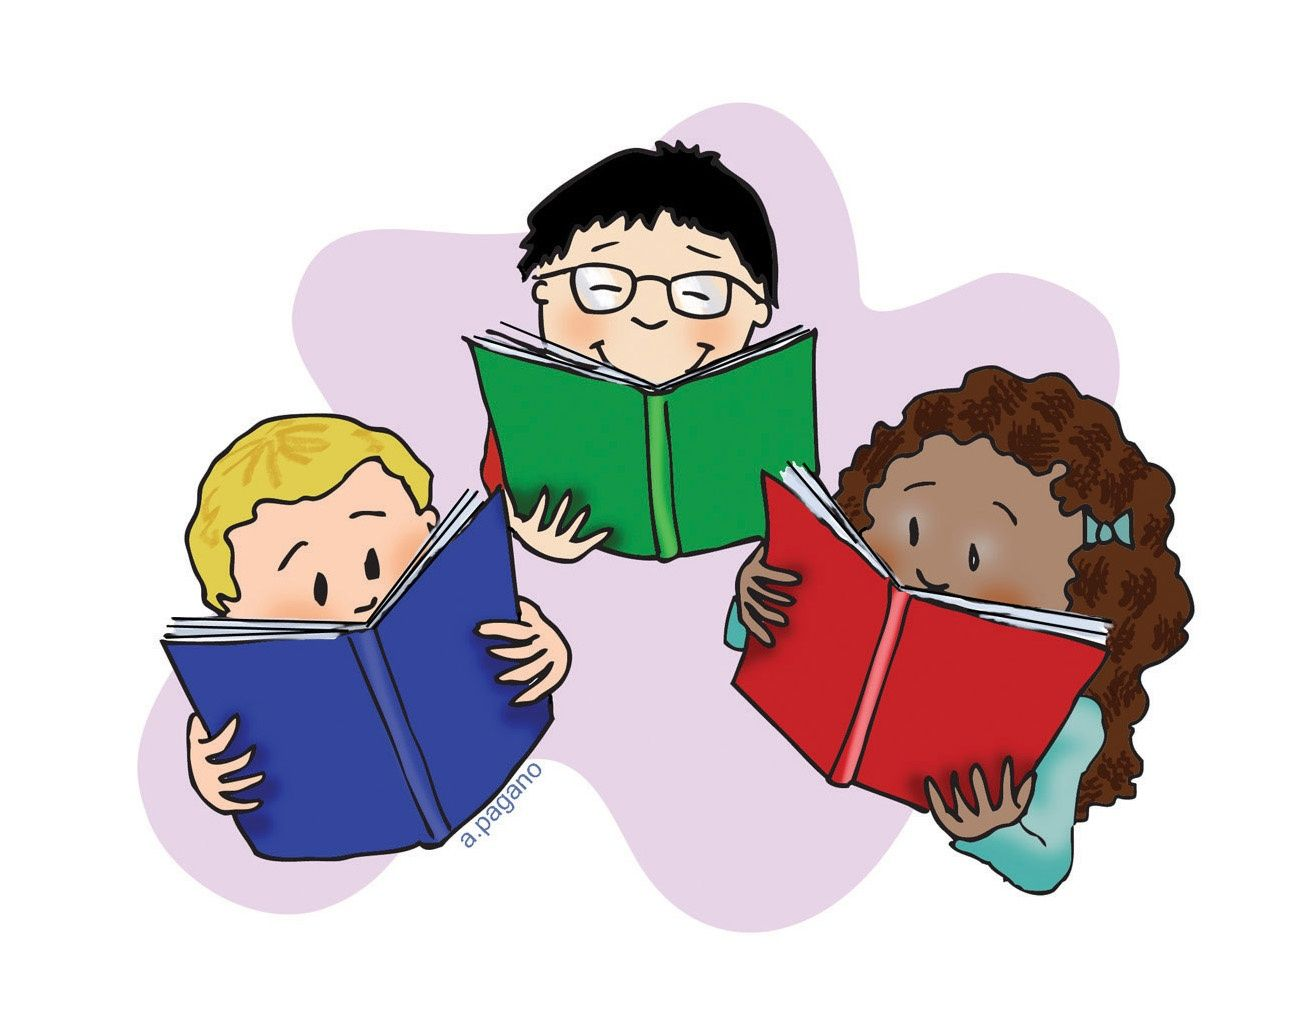 Free children reading books images download free clip art